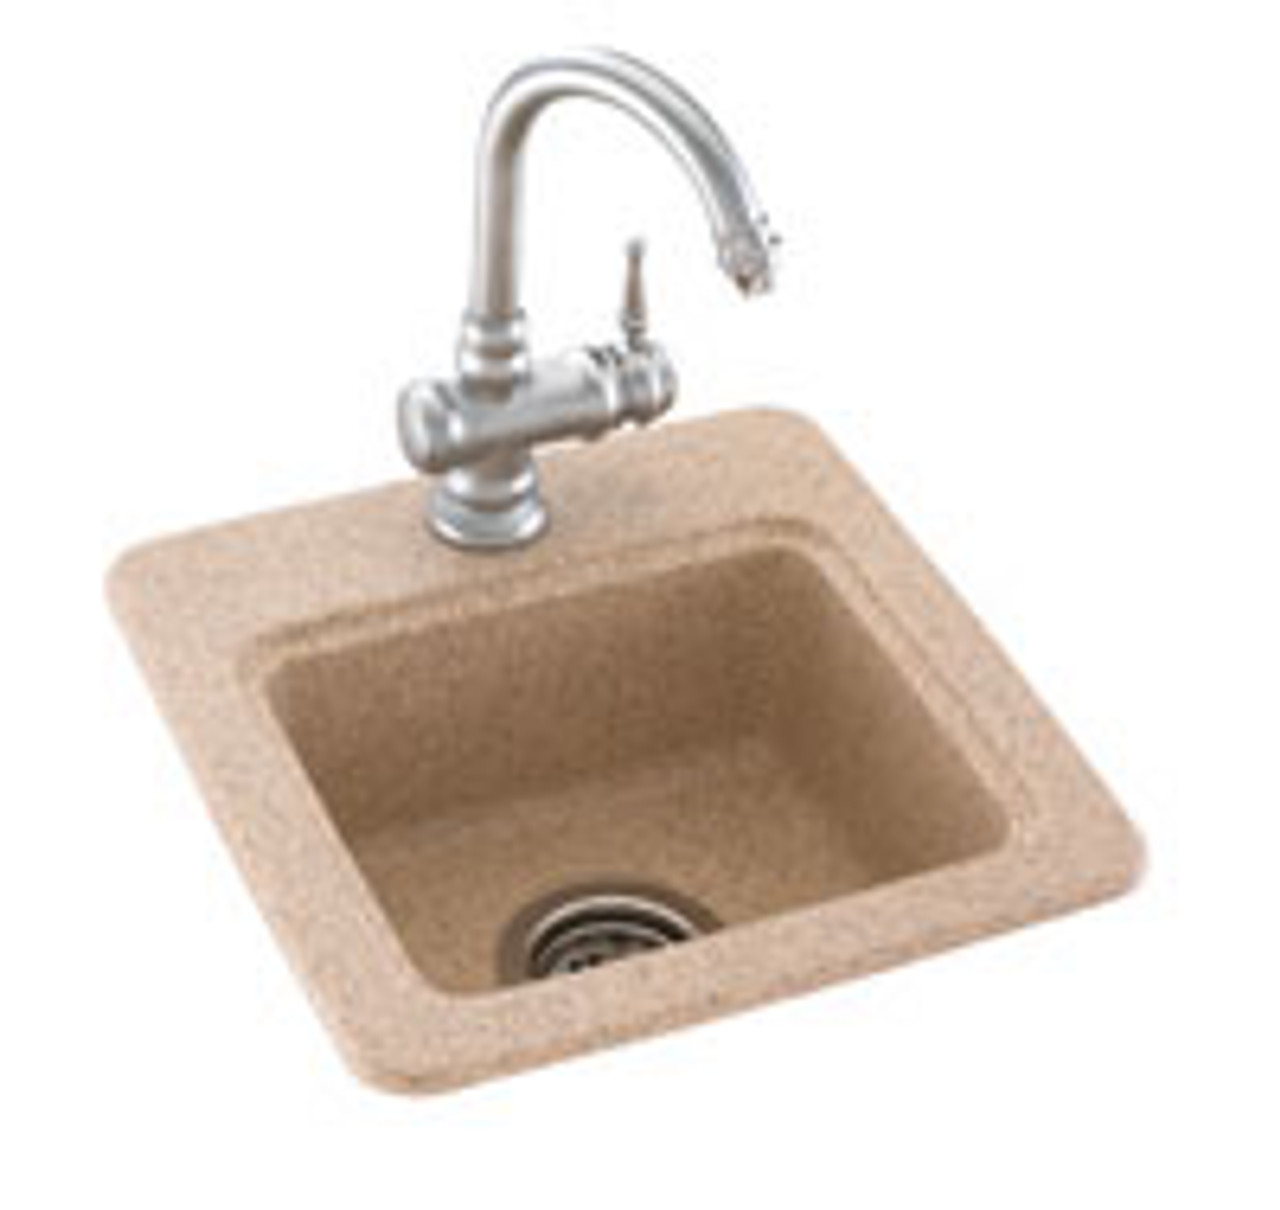 Swanstone Bs 1515 Entertainment Sink Aggregate Color Swanstone Products Eplumbing Products Inc